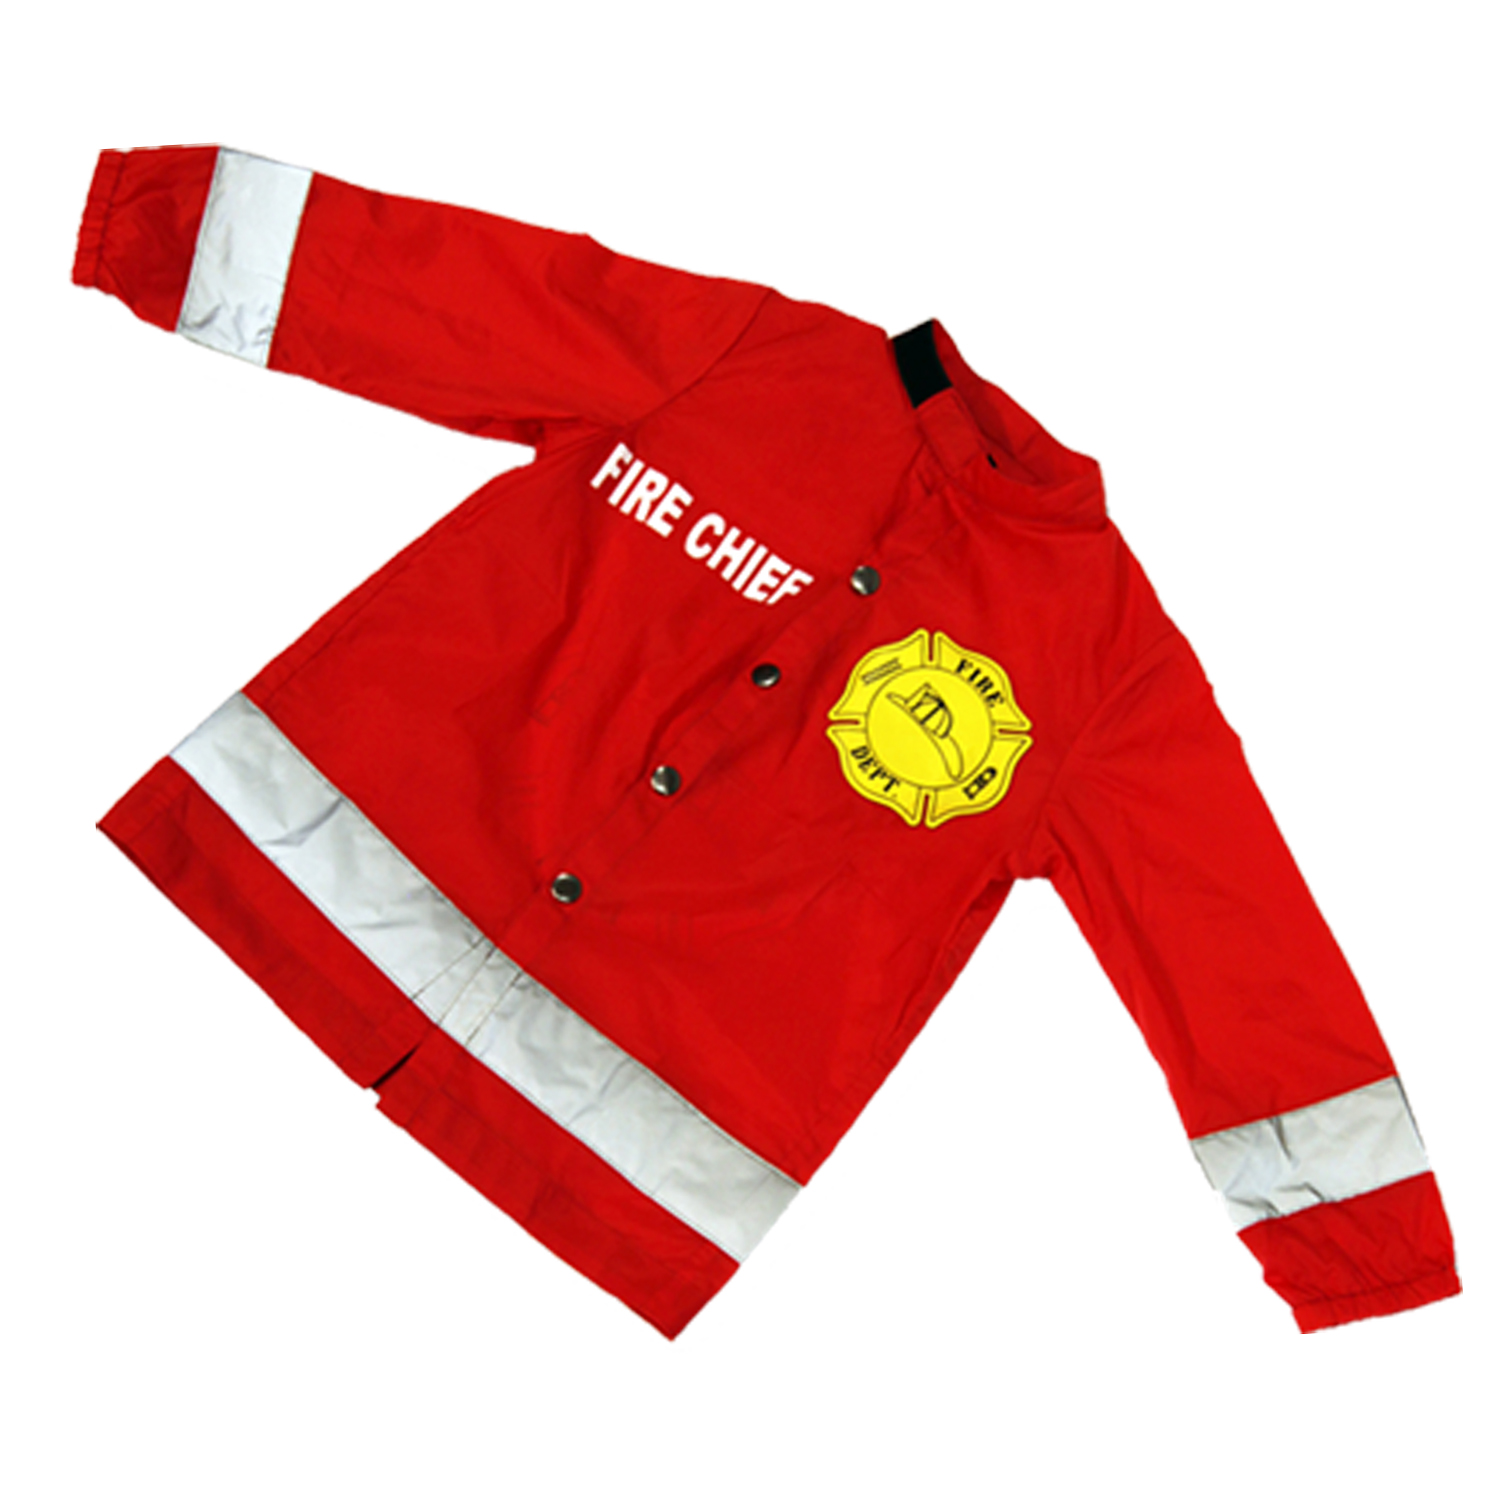 SALE 50% OFF  $9.99 - Includes a FREE embossed Kid Cut Specialist certificate.Familiar fire jacket designAdjustable patented collarOne size fits allRecommended for ages 1 to 5